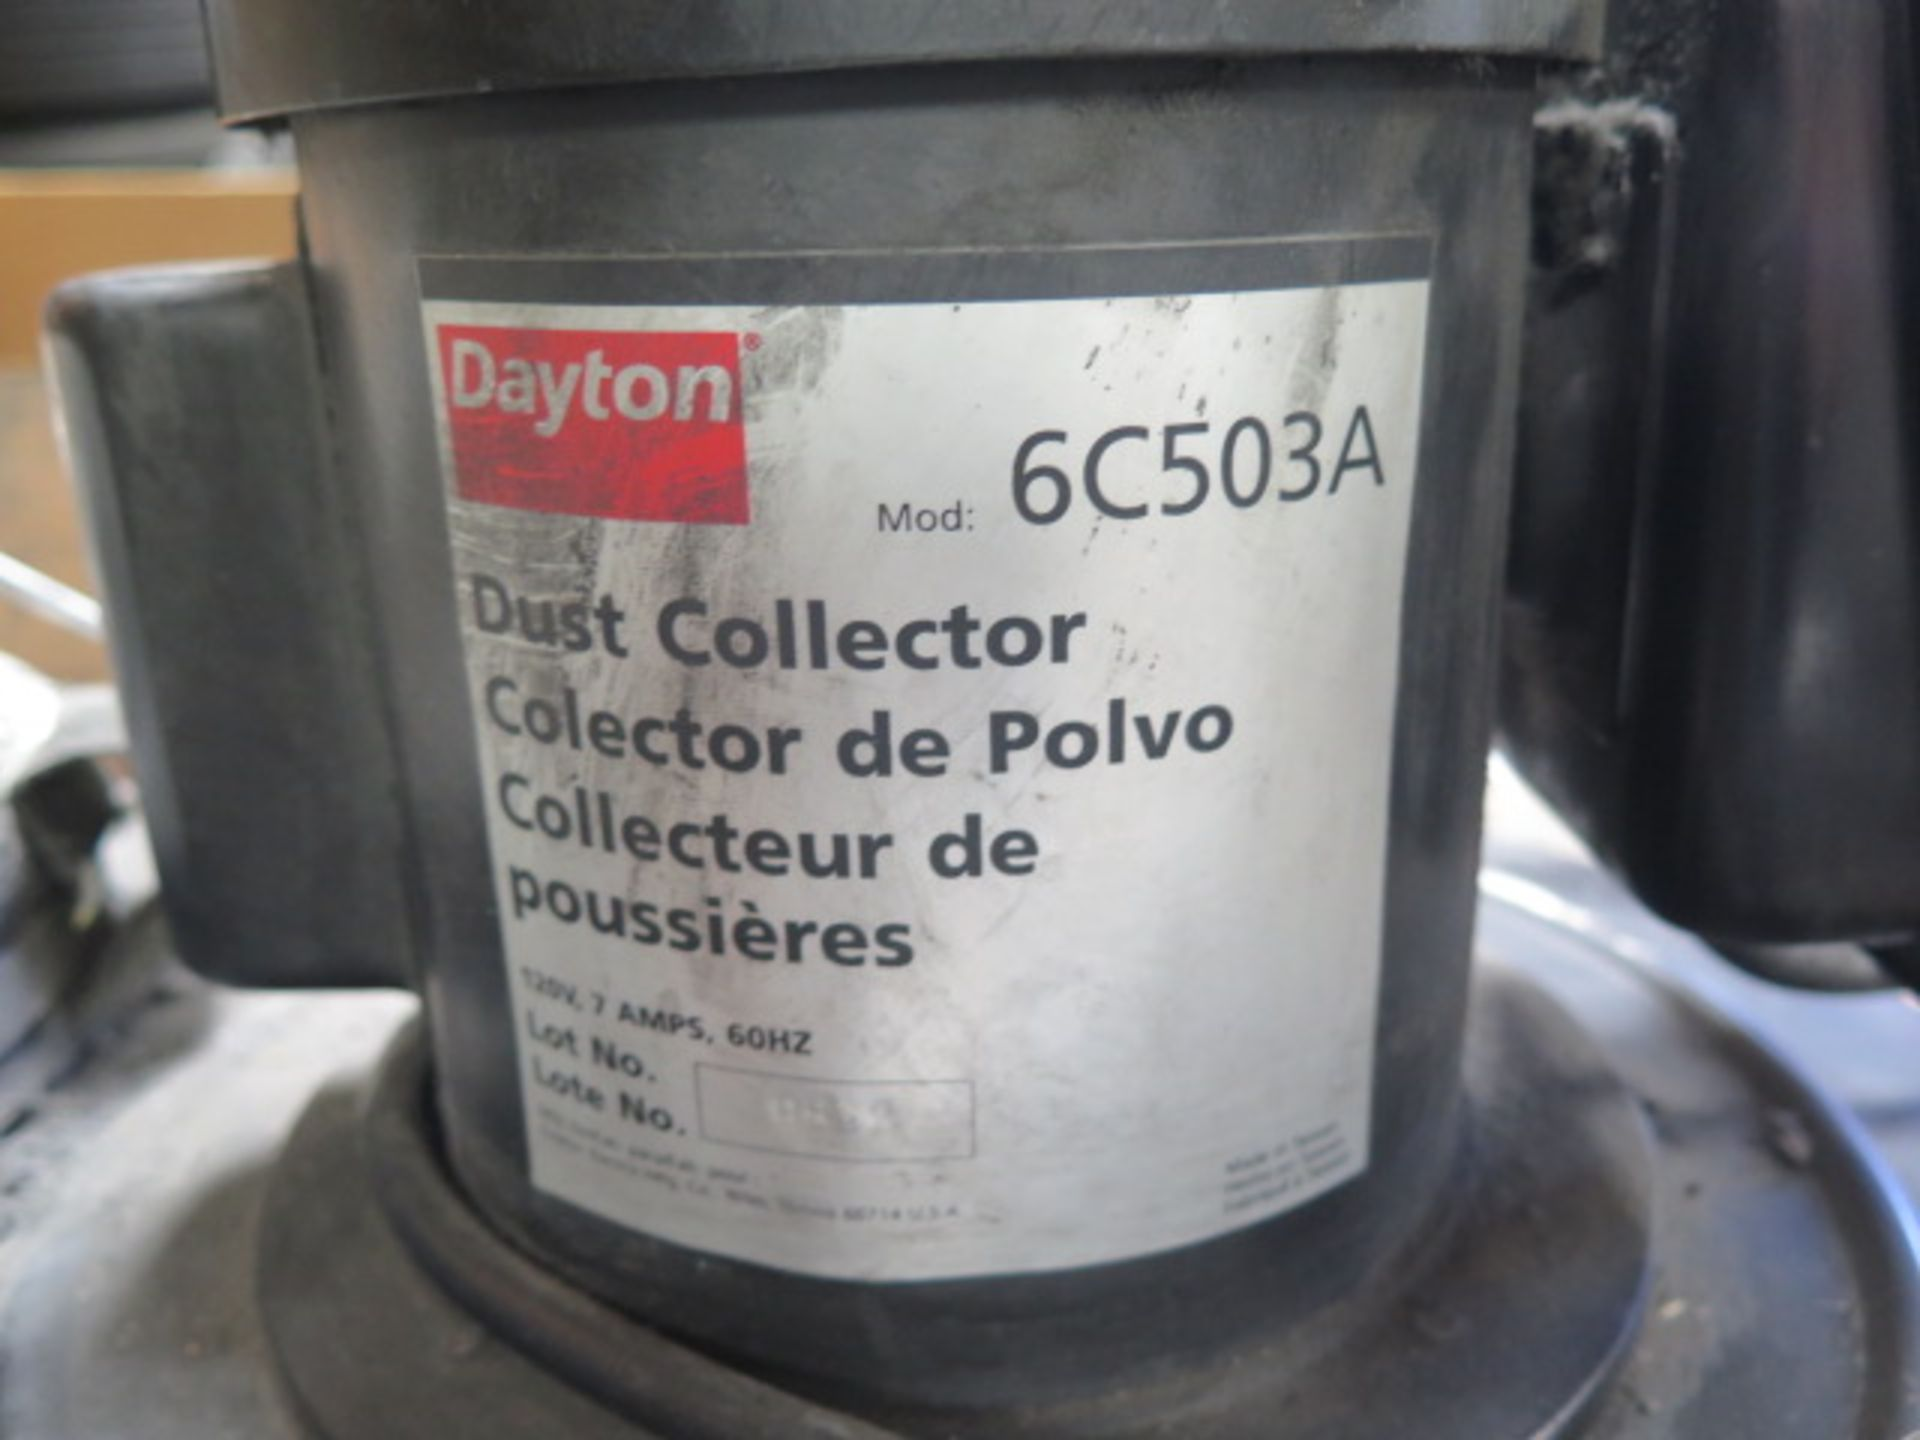 Dayton Dust Collector (SOLD AS-IS - NO WARRANTY) - Image 3 of 5